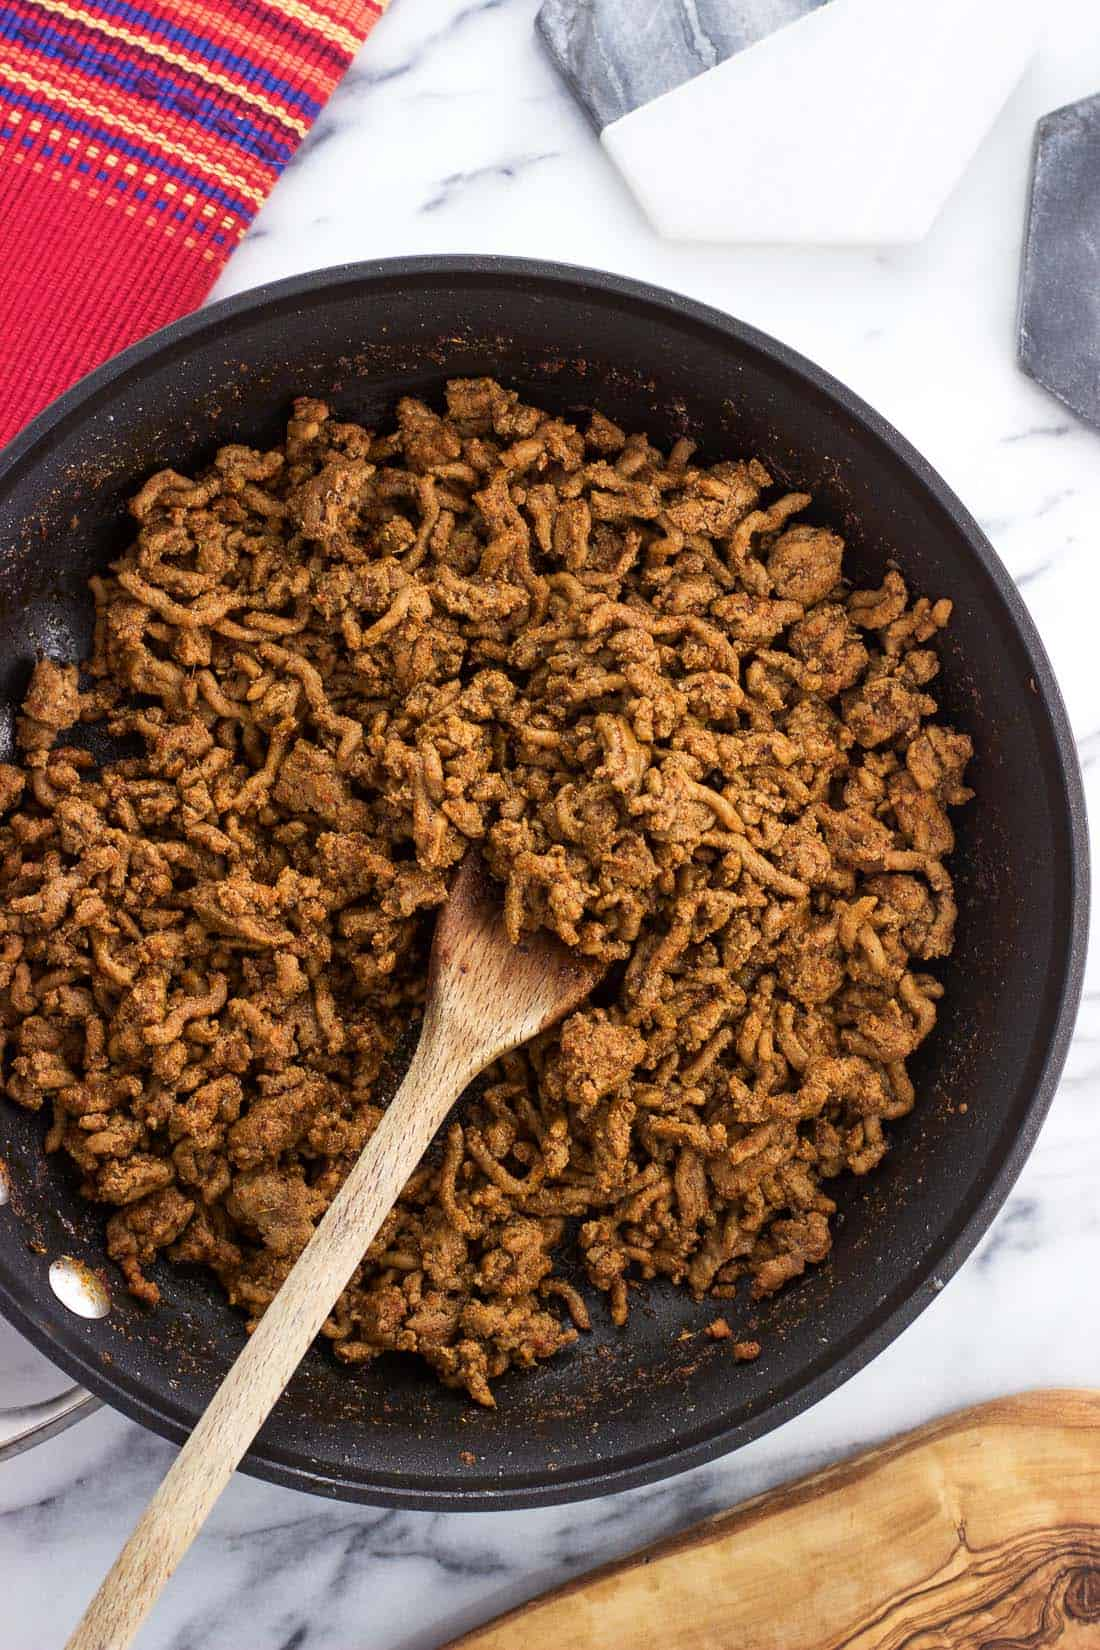 Cooked taco meat in a skillet with a wooden spoon.